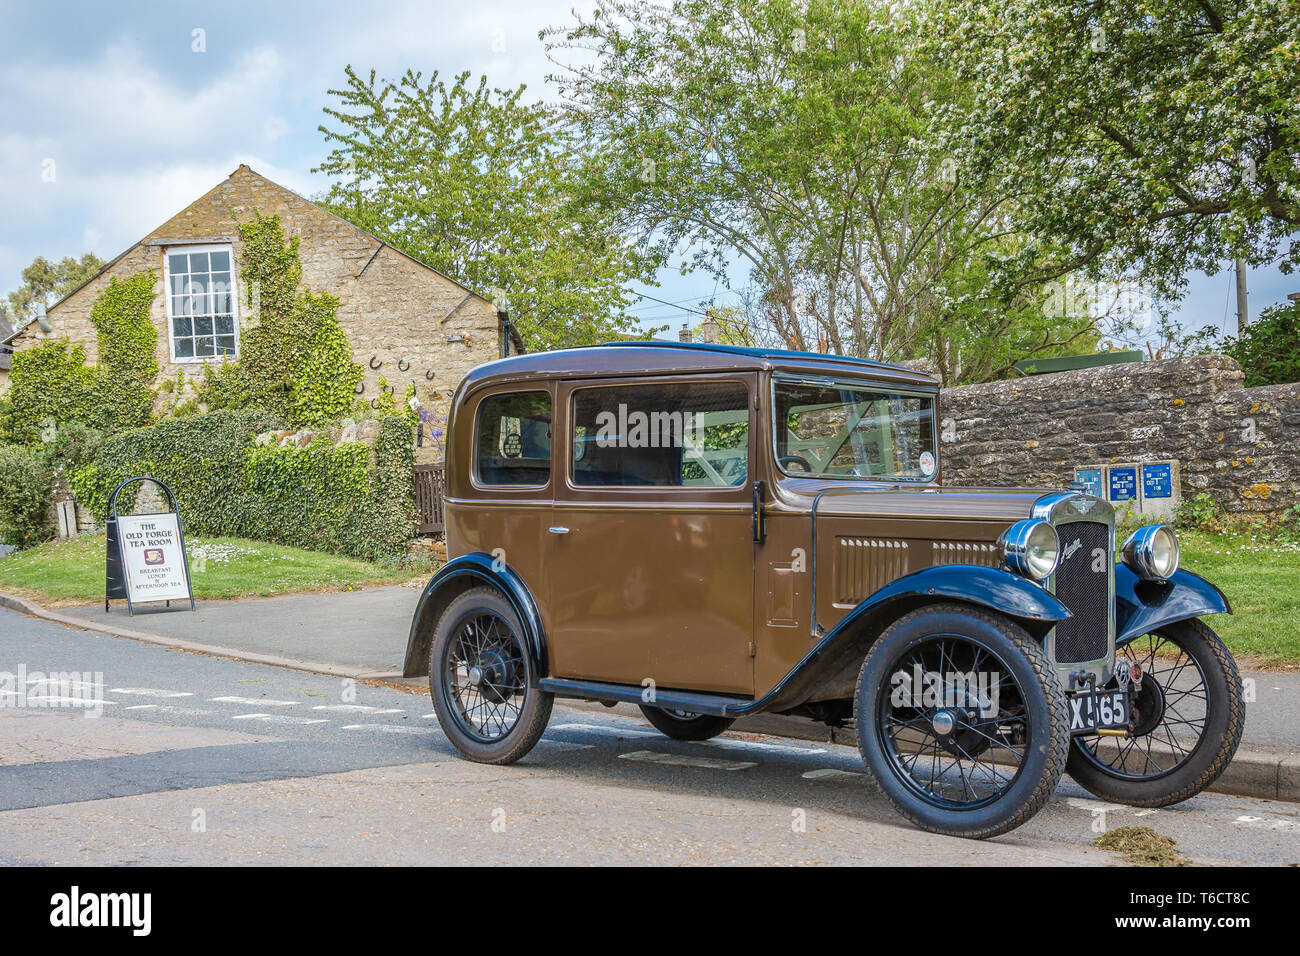 A vintage Austin 7 saloon car in a village location Stock Photo